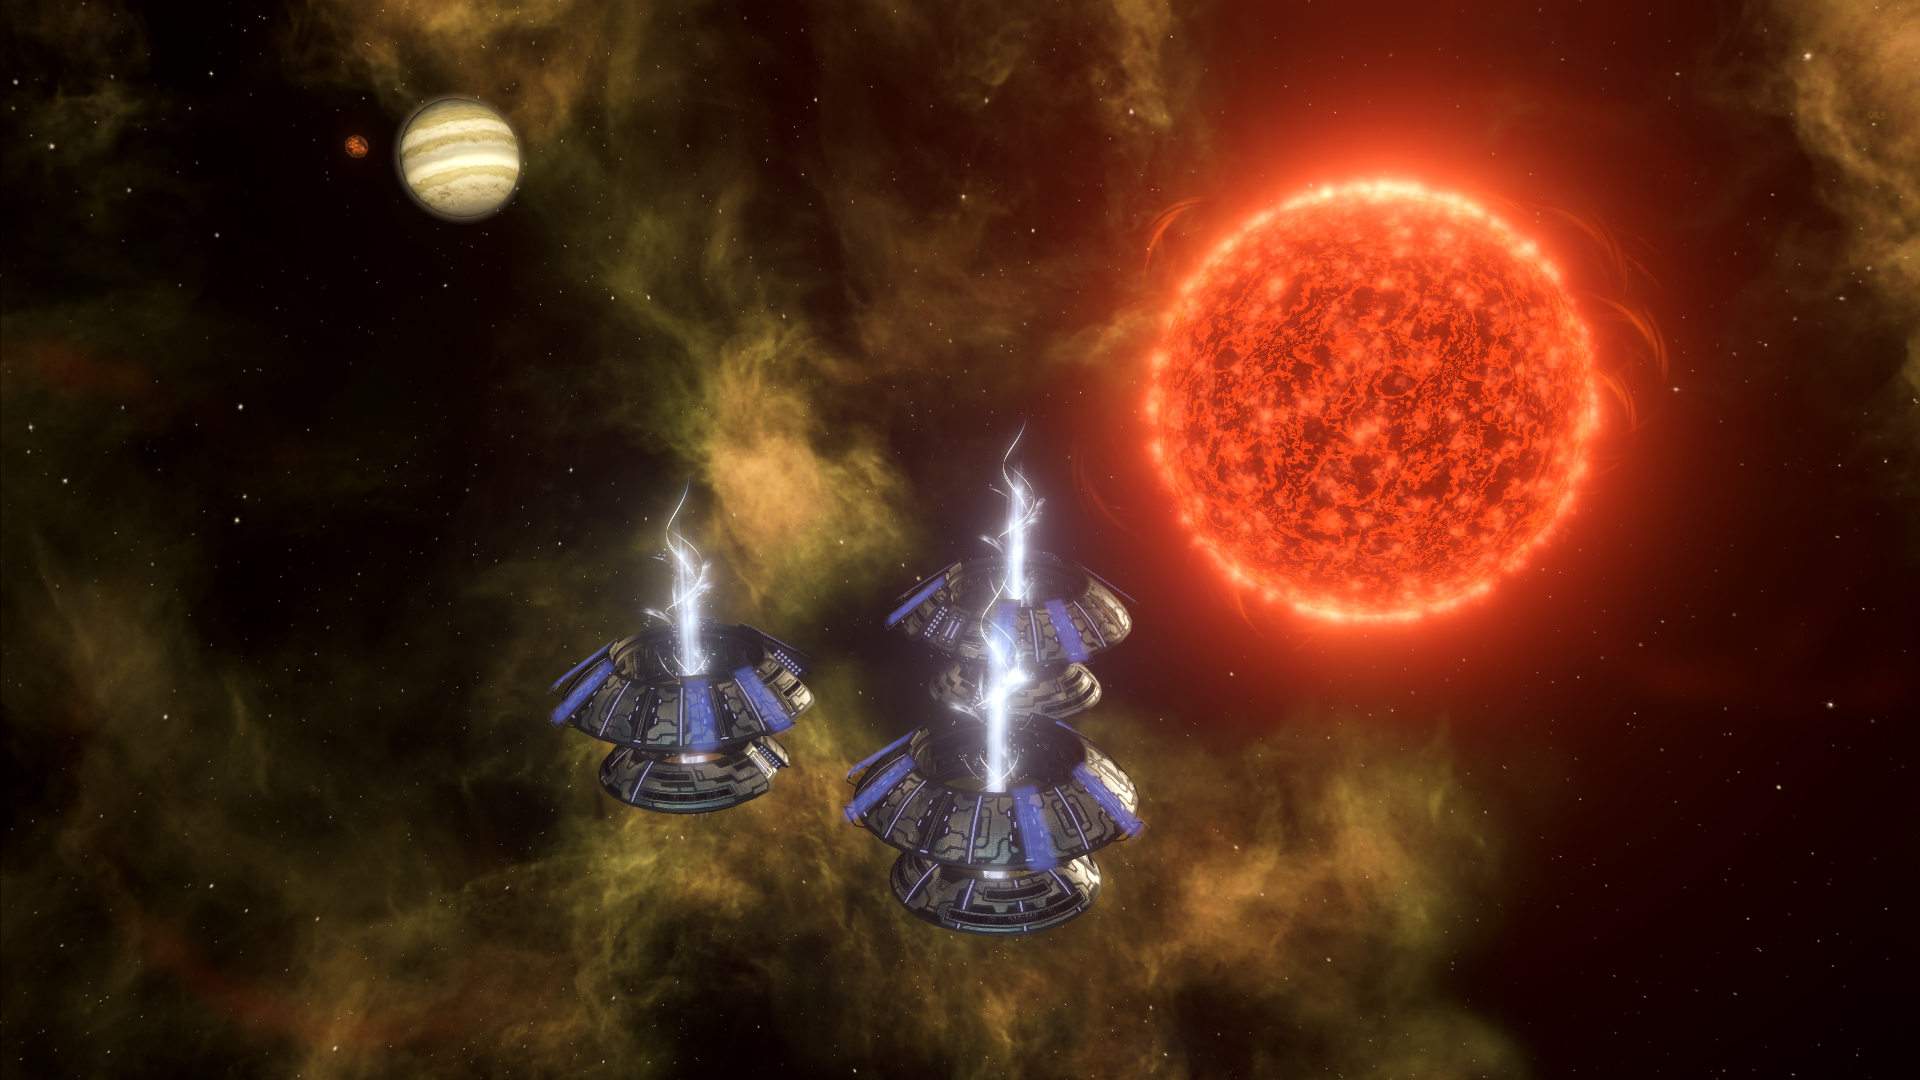 Jan 18 Stellaris 2 2 3 patch released, and 2 2 4 beta now available